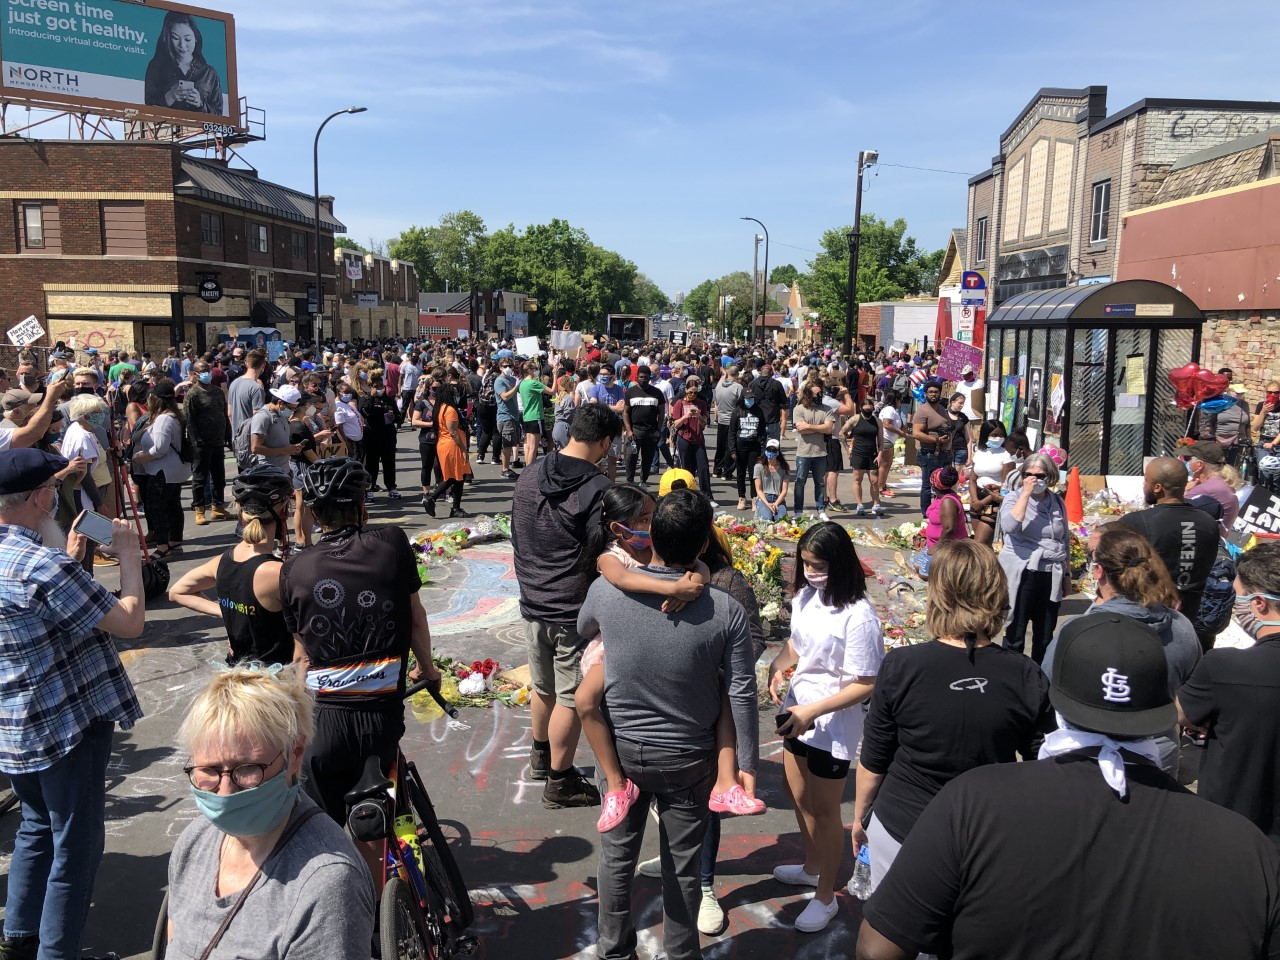 Protesters gather where George Floyd was arrested in Minneapolis on May 31, 2020.